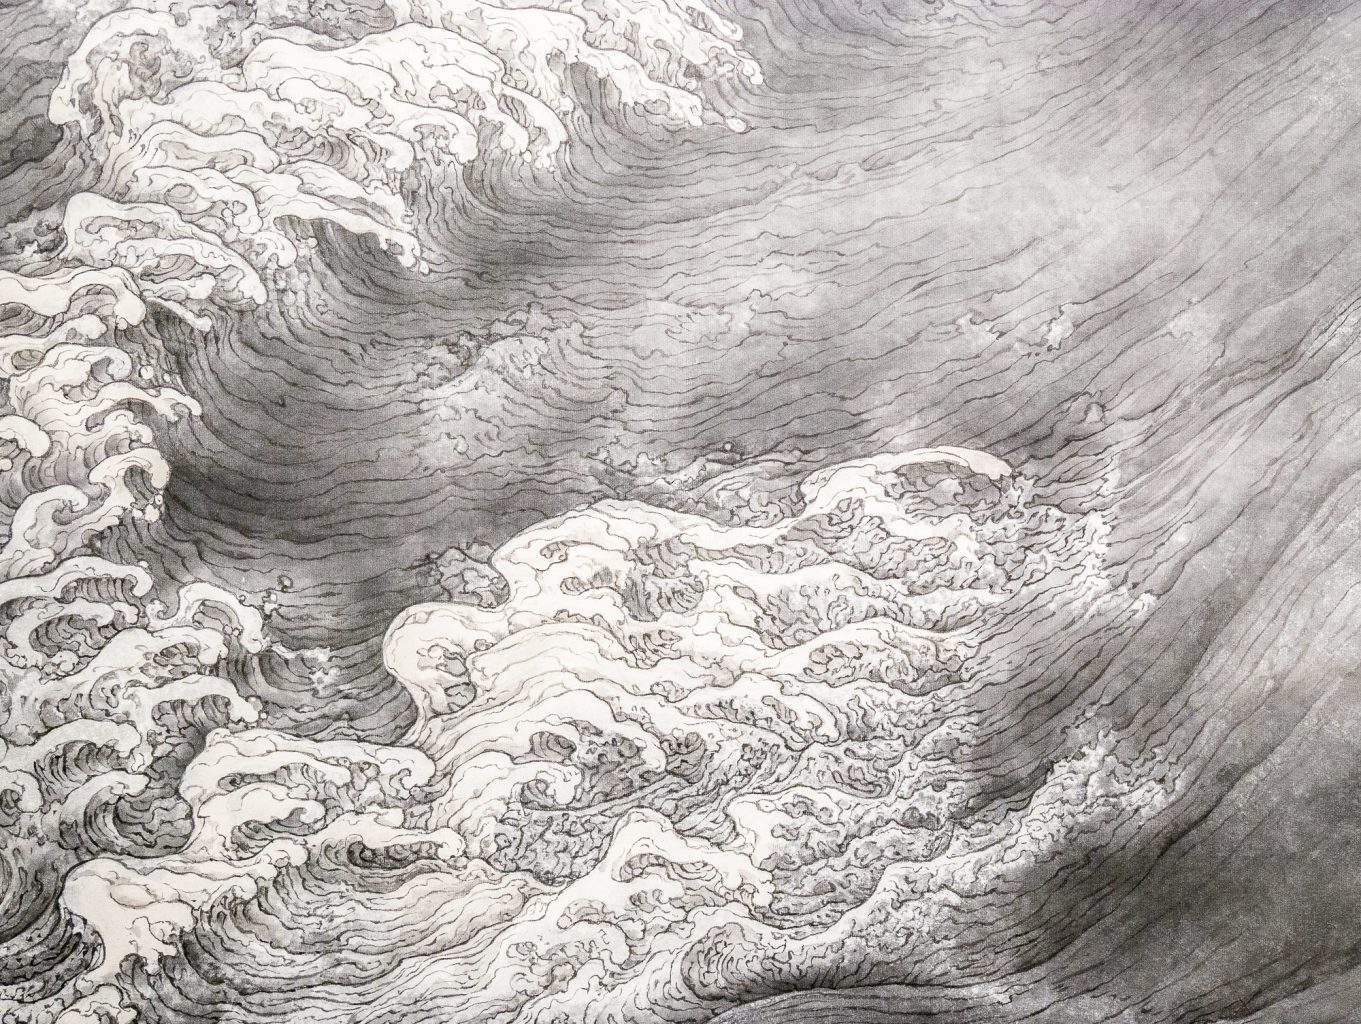 Li Huayi painting detail